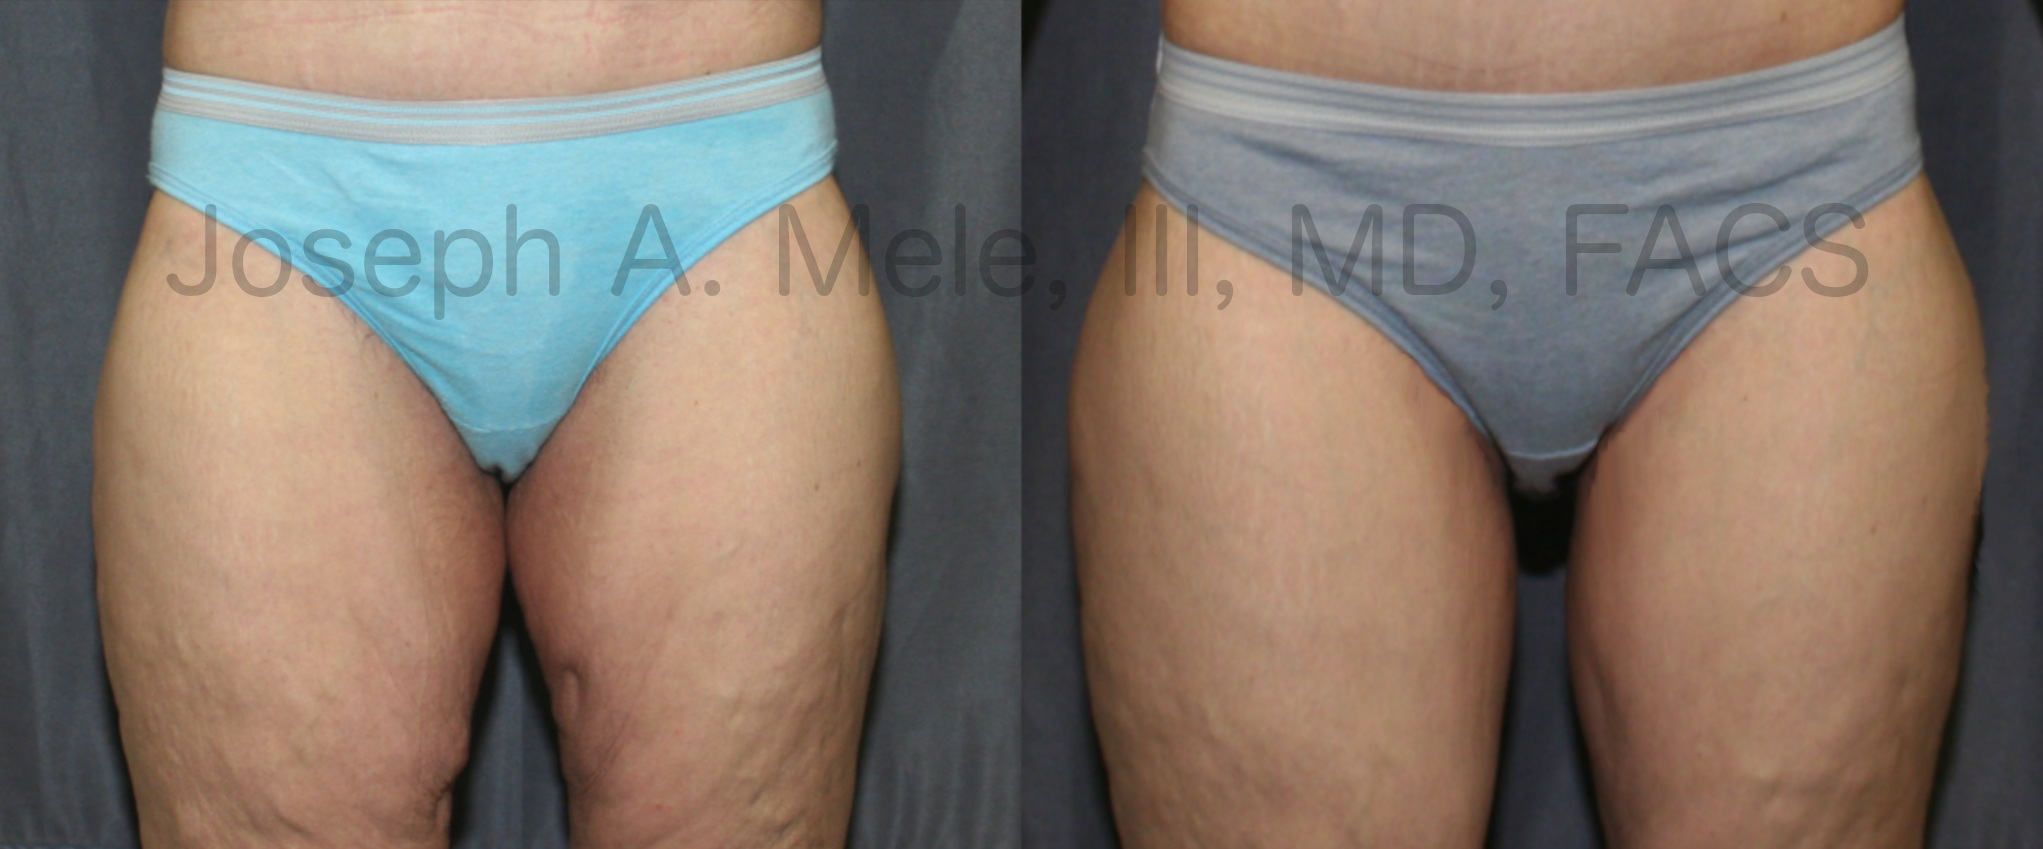 Thigh Lift before and after pictures (thighplasty after weight loss)